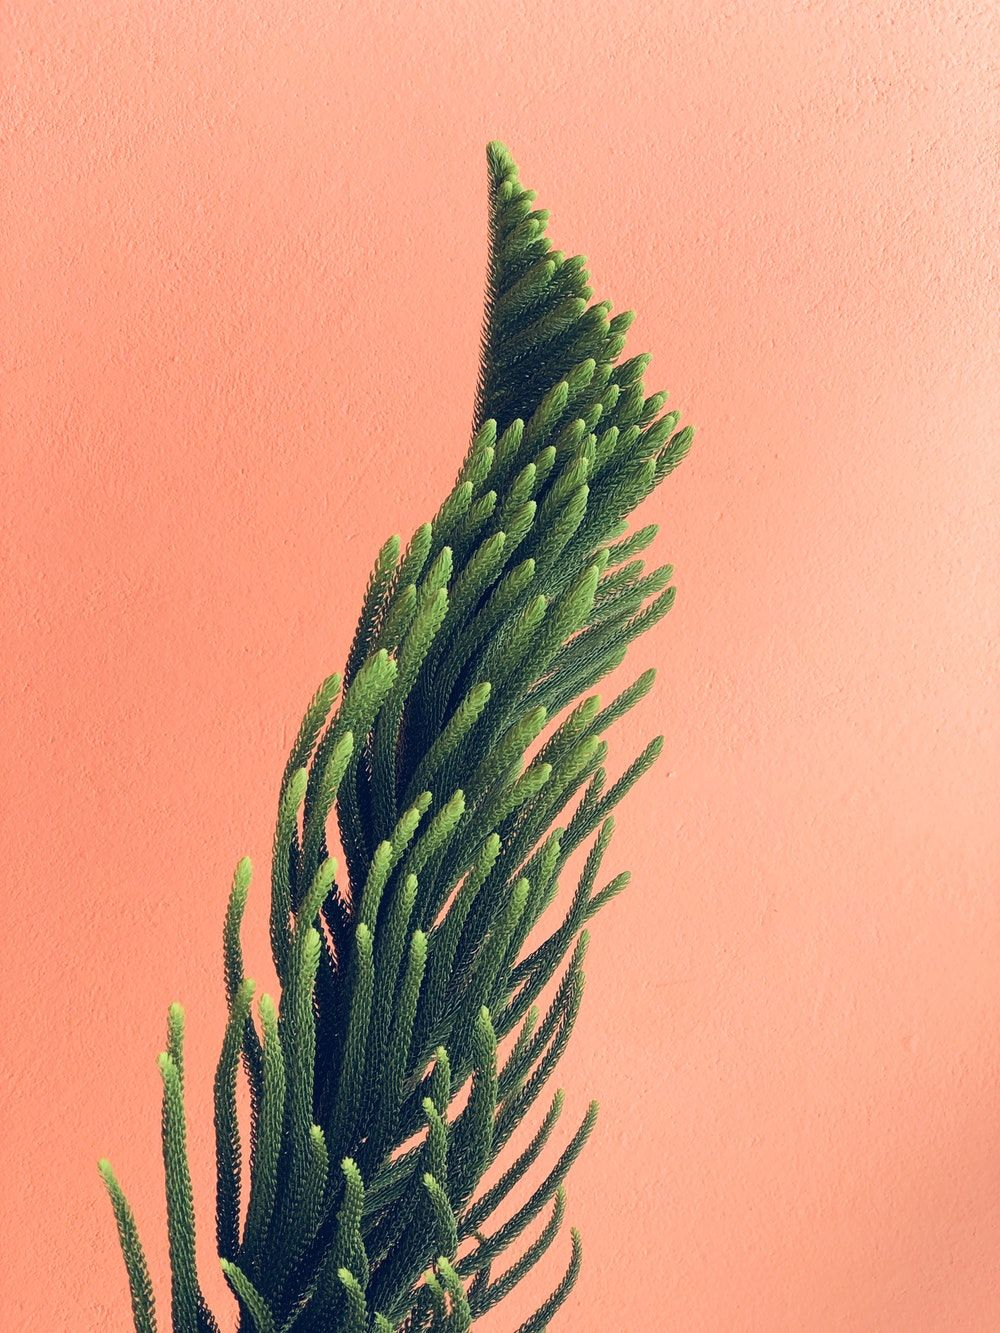 aesthetic plant wallpapers